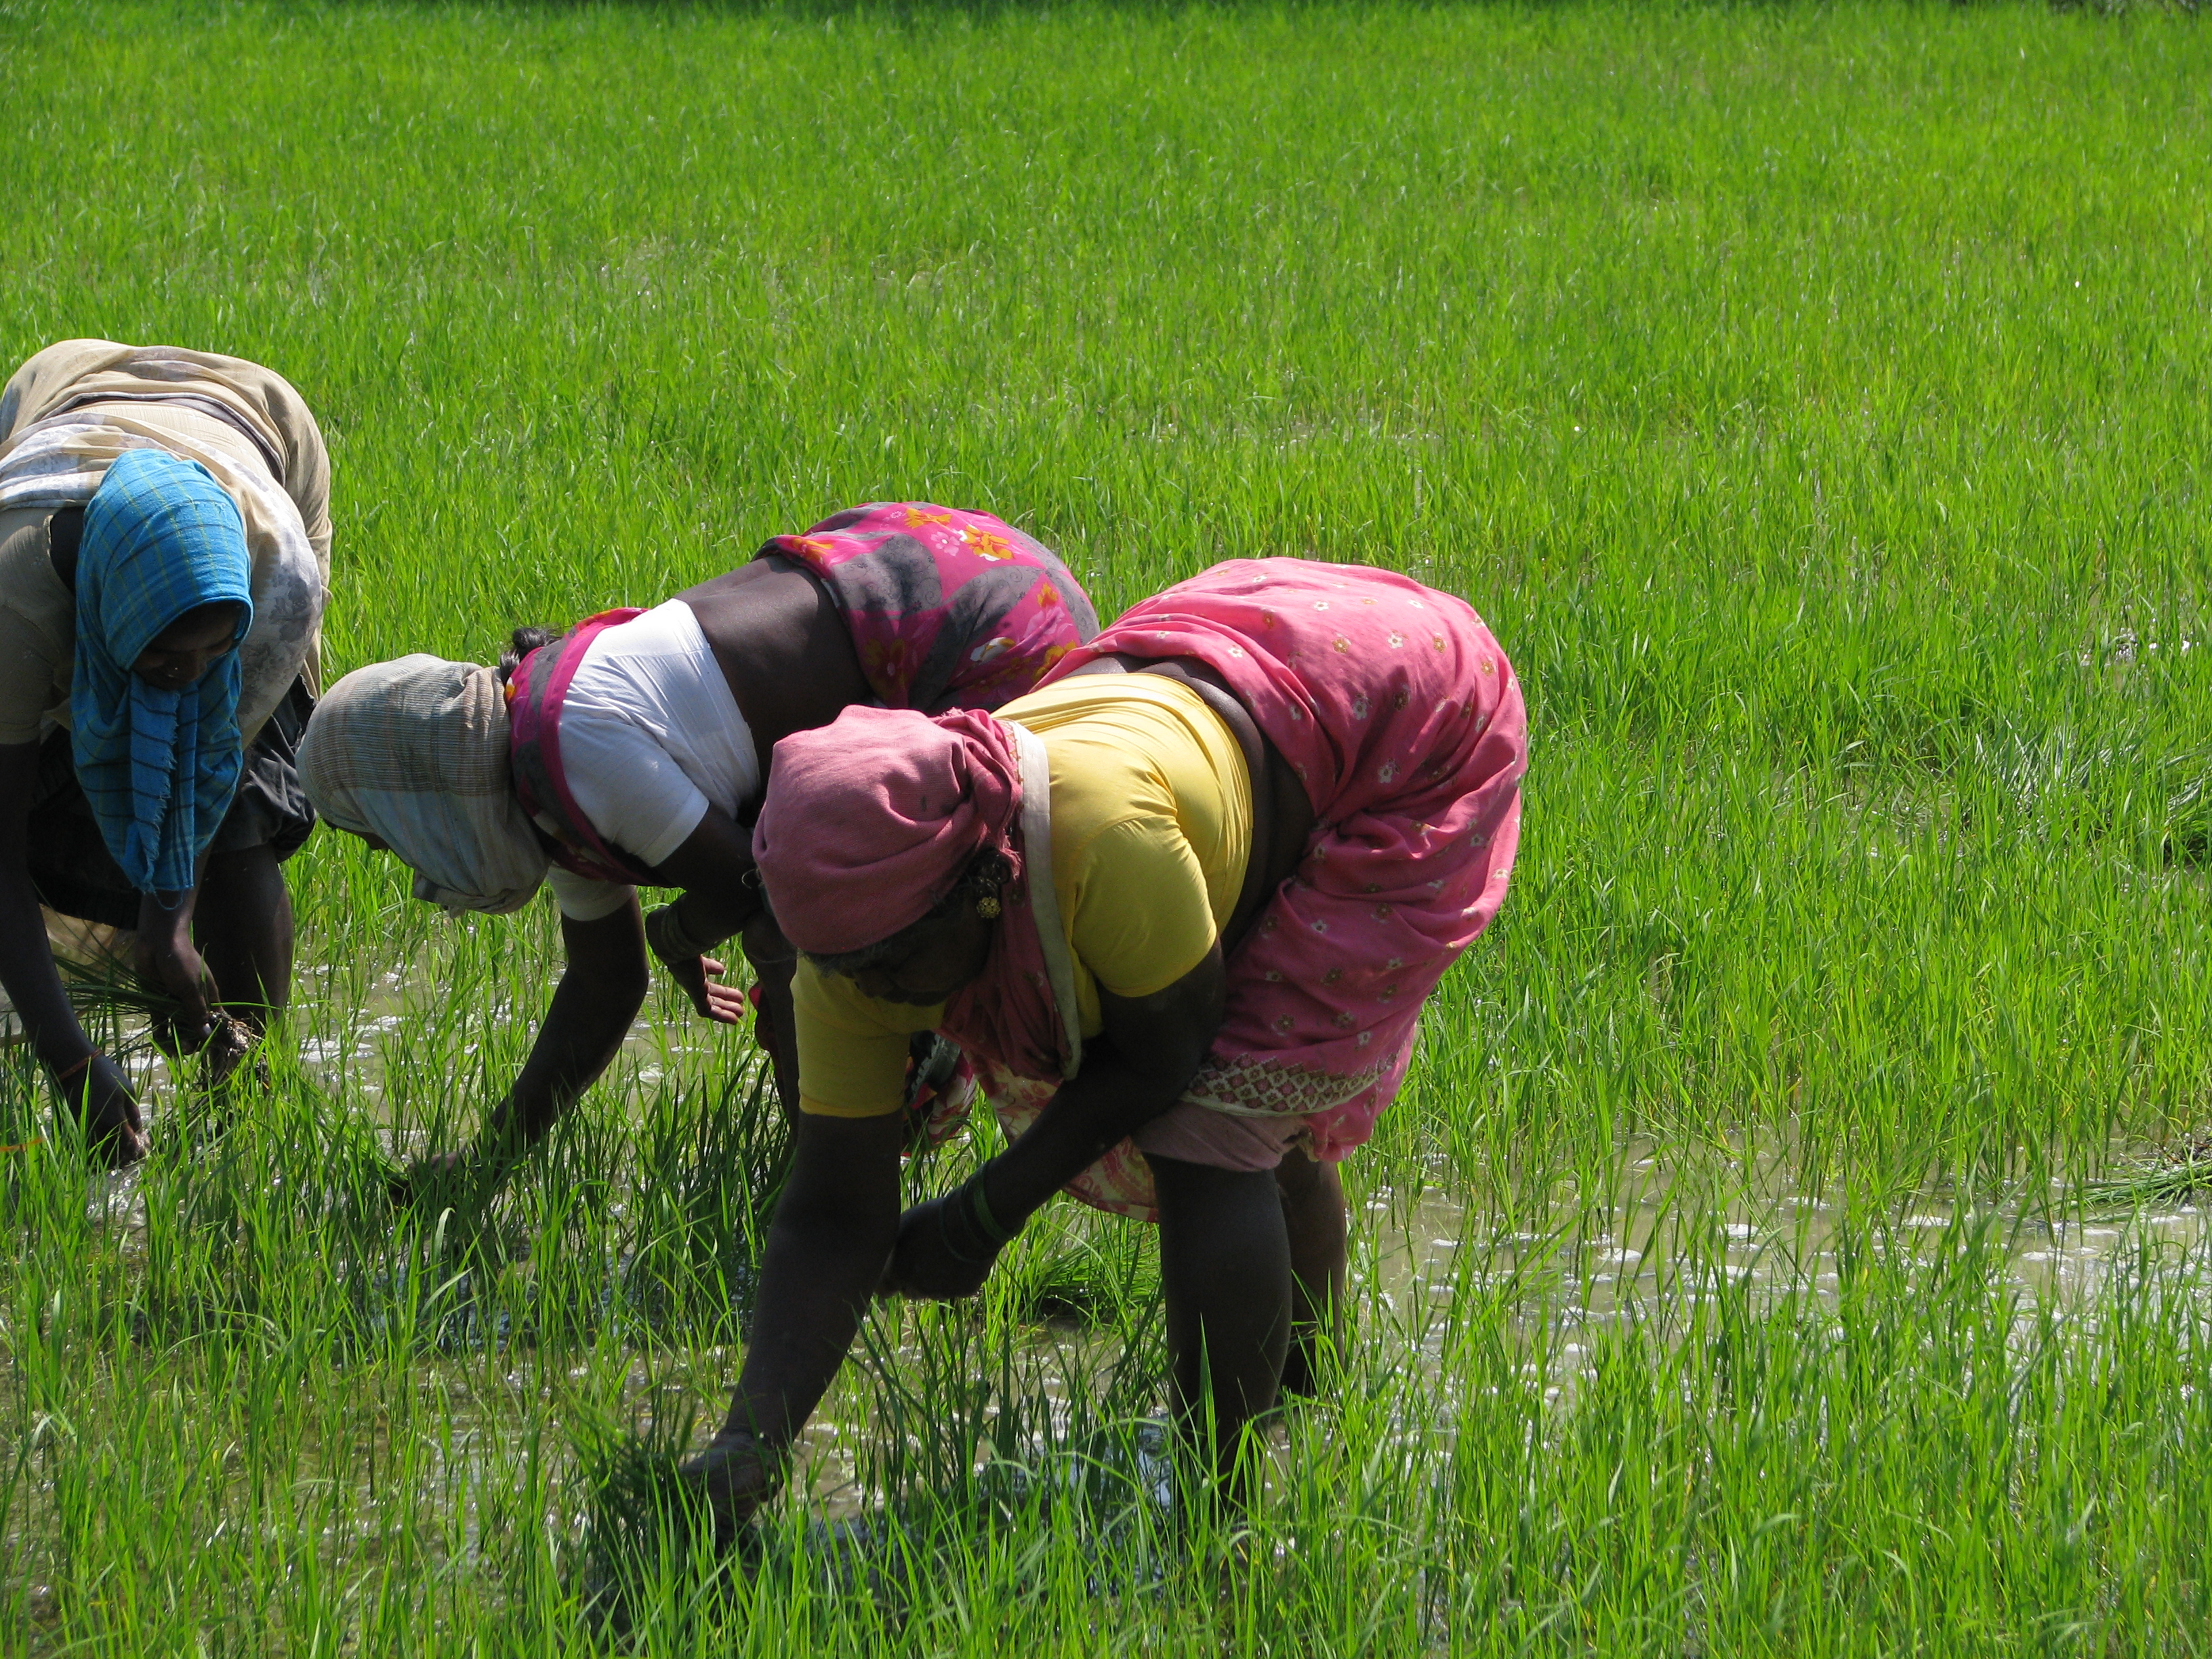 India_-_Sights_&_Culture_-_Planting_Rice_Paddy_5_(3245008474).jpg